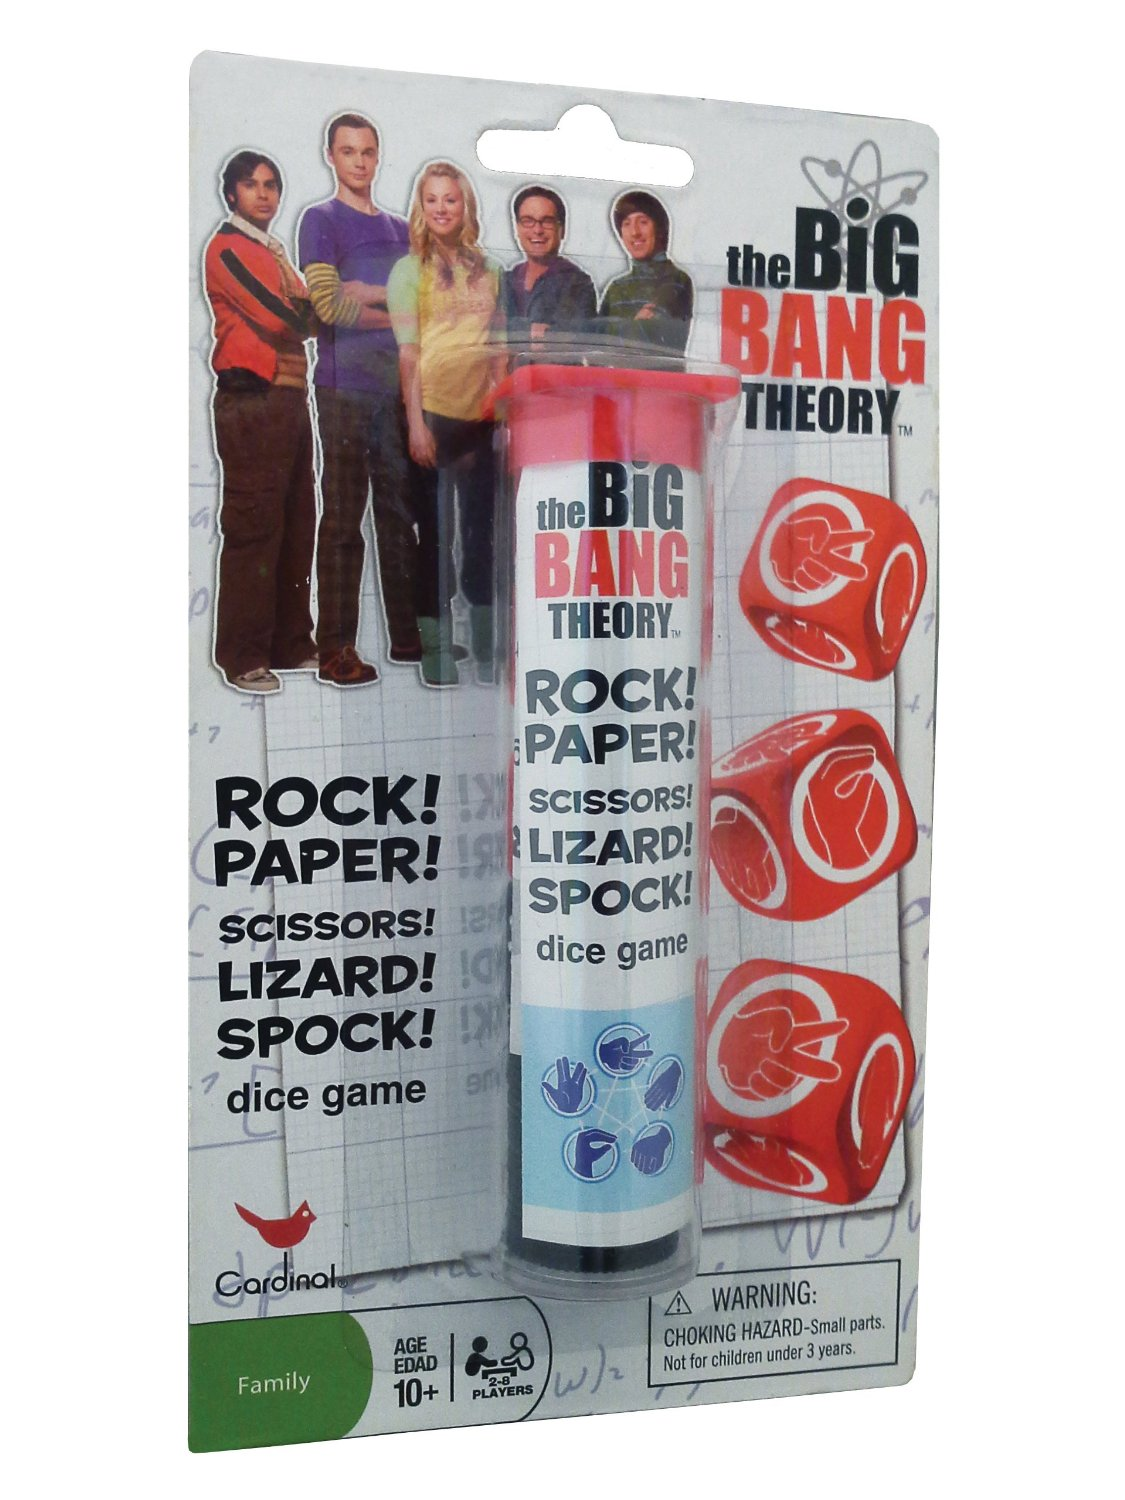 The Big Bang Theory Rock Paper Scissors Dice Game